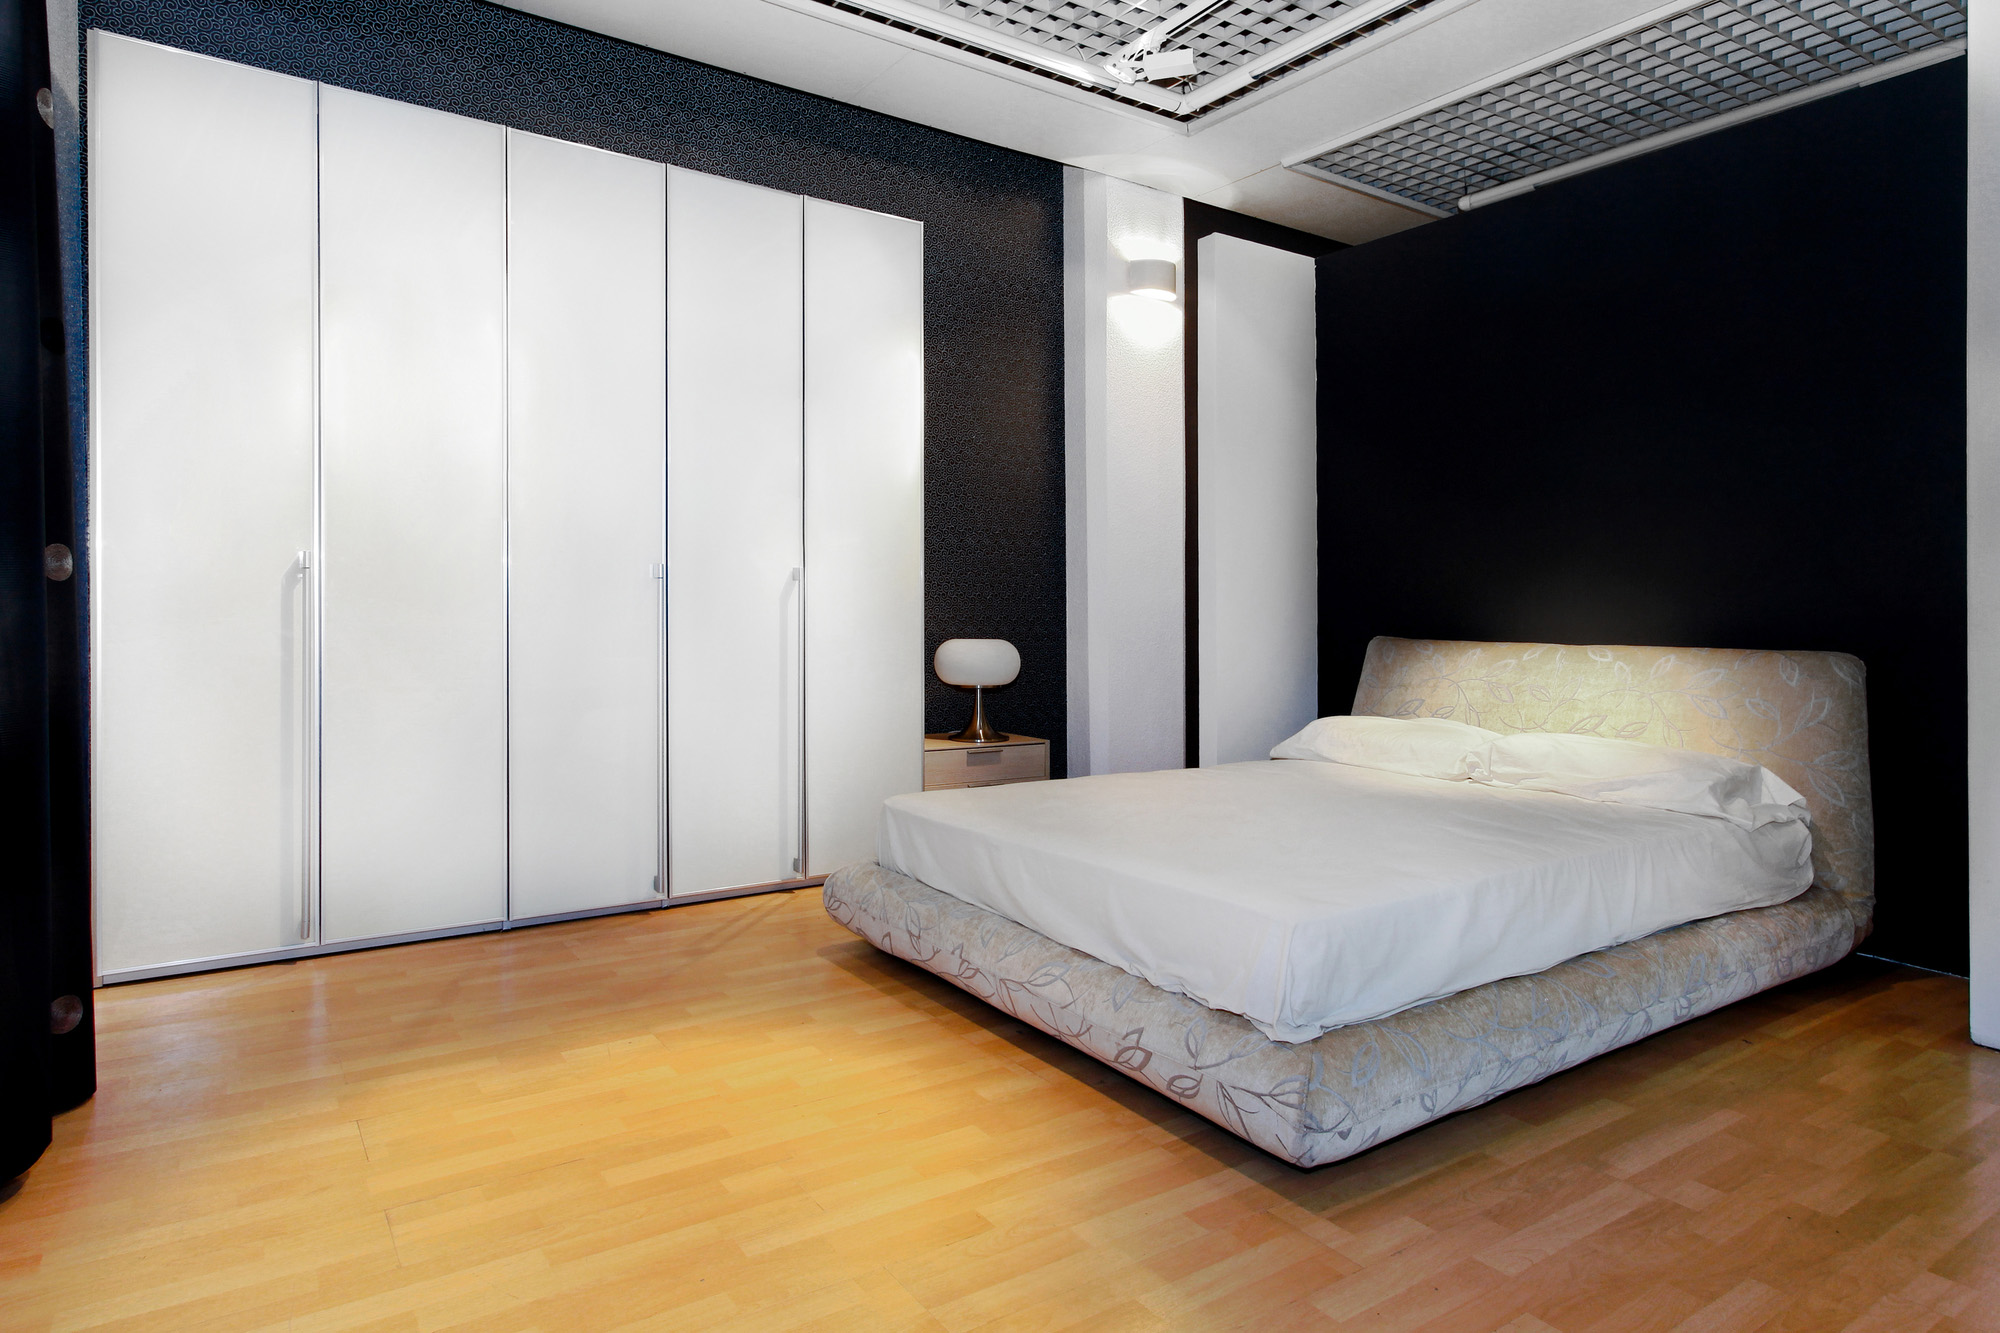 Fitted wardrobes, white wardrobe doors,